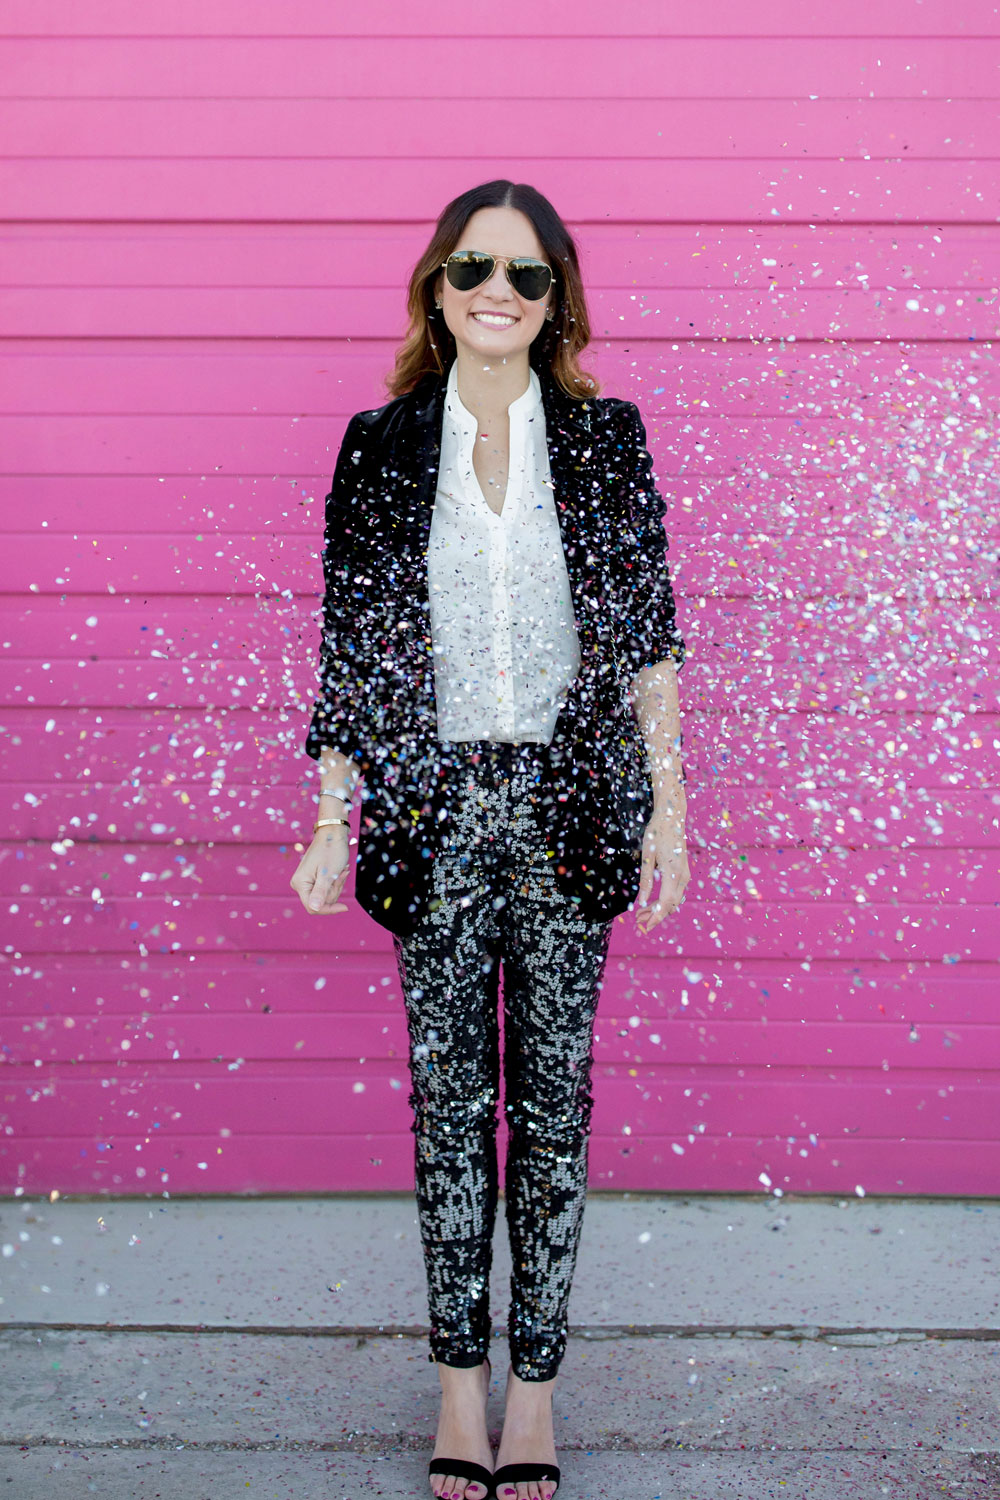 Jennifer Lake Style Charade throwing confetti in Express sequin leggings, black velvet blazer, ivory lace top, and a quilted Chanel flap bag in front of a Chicago pink wall